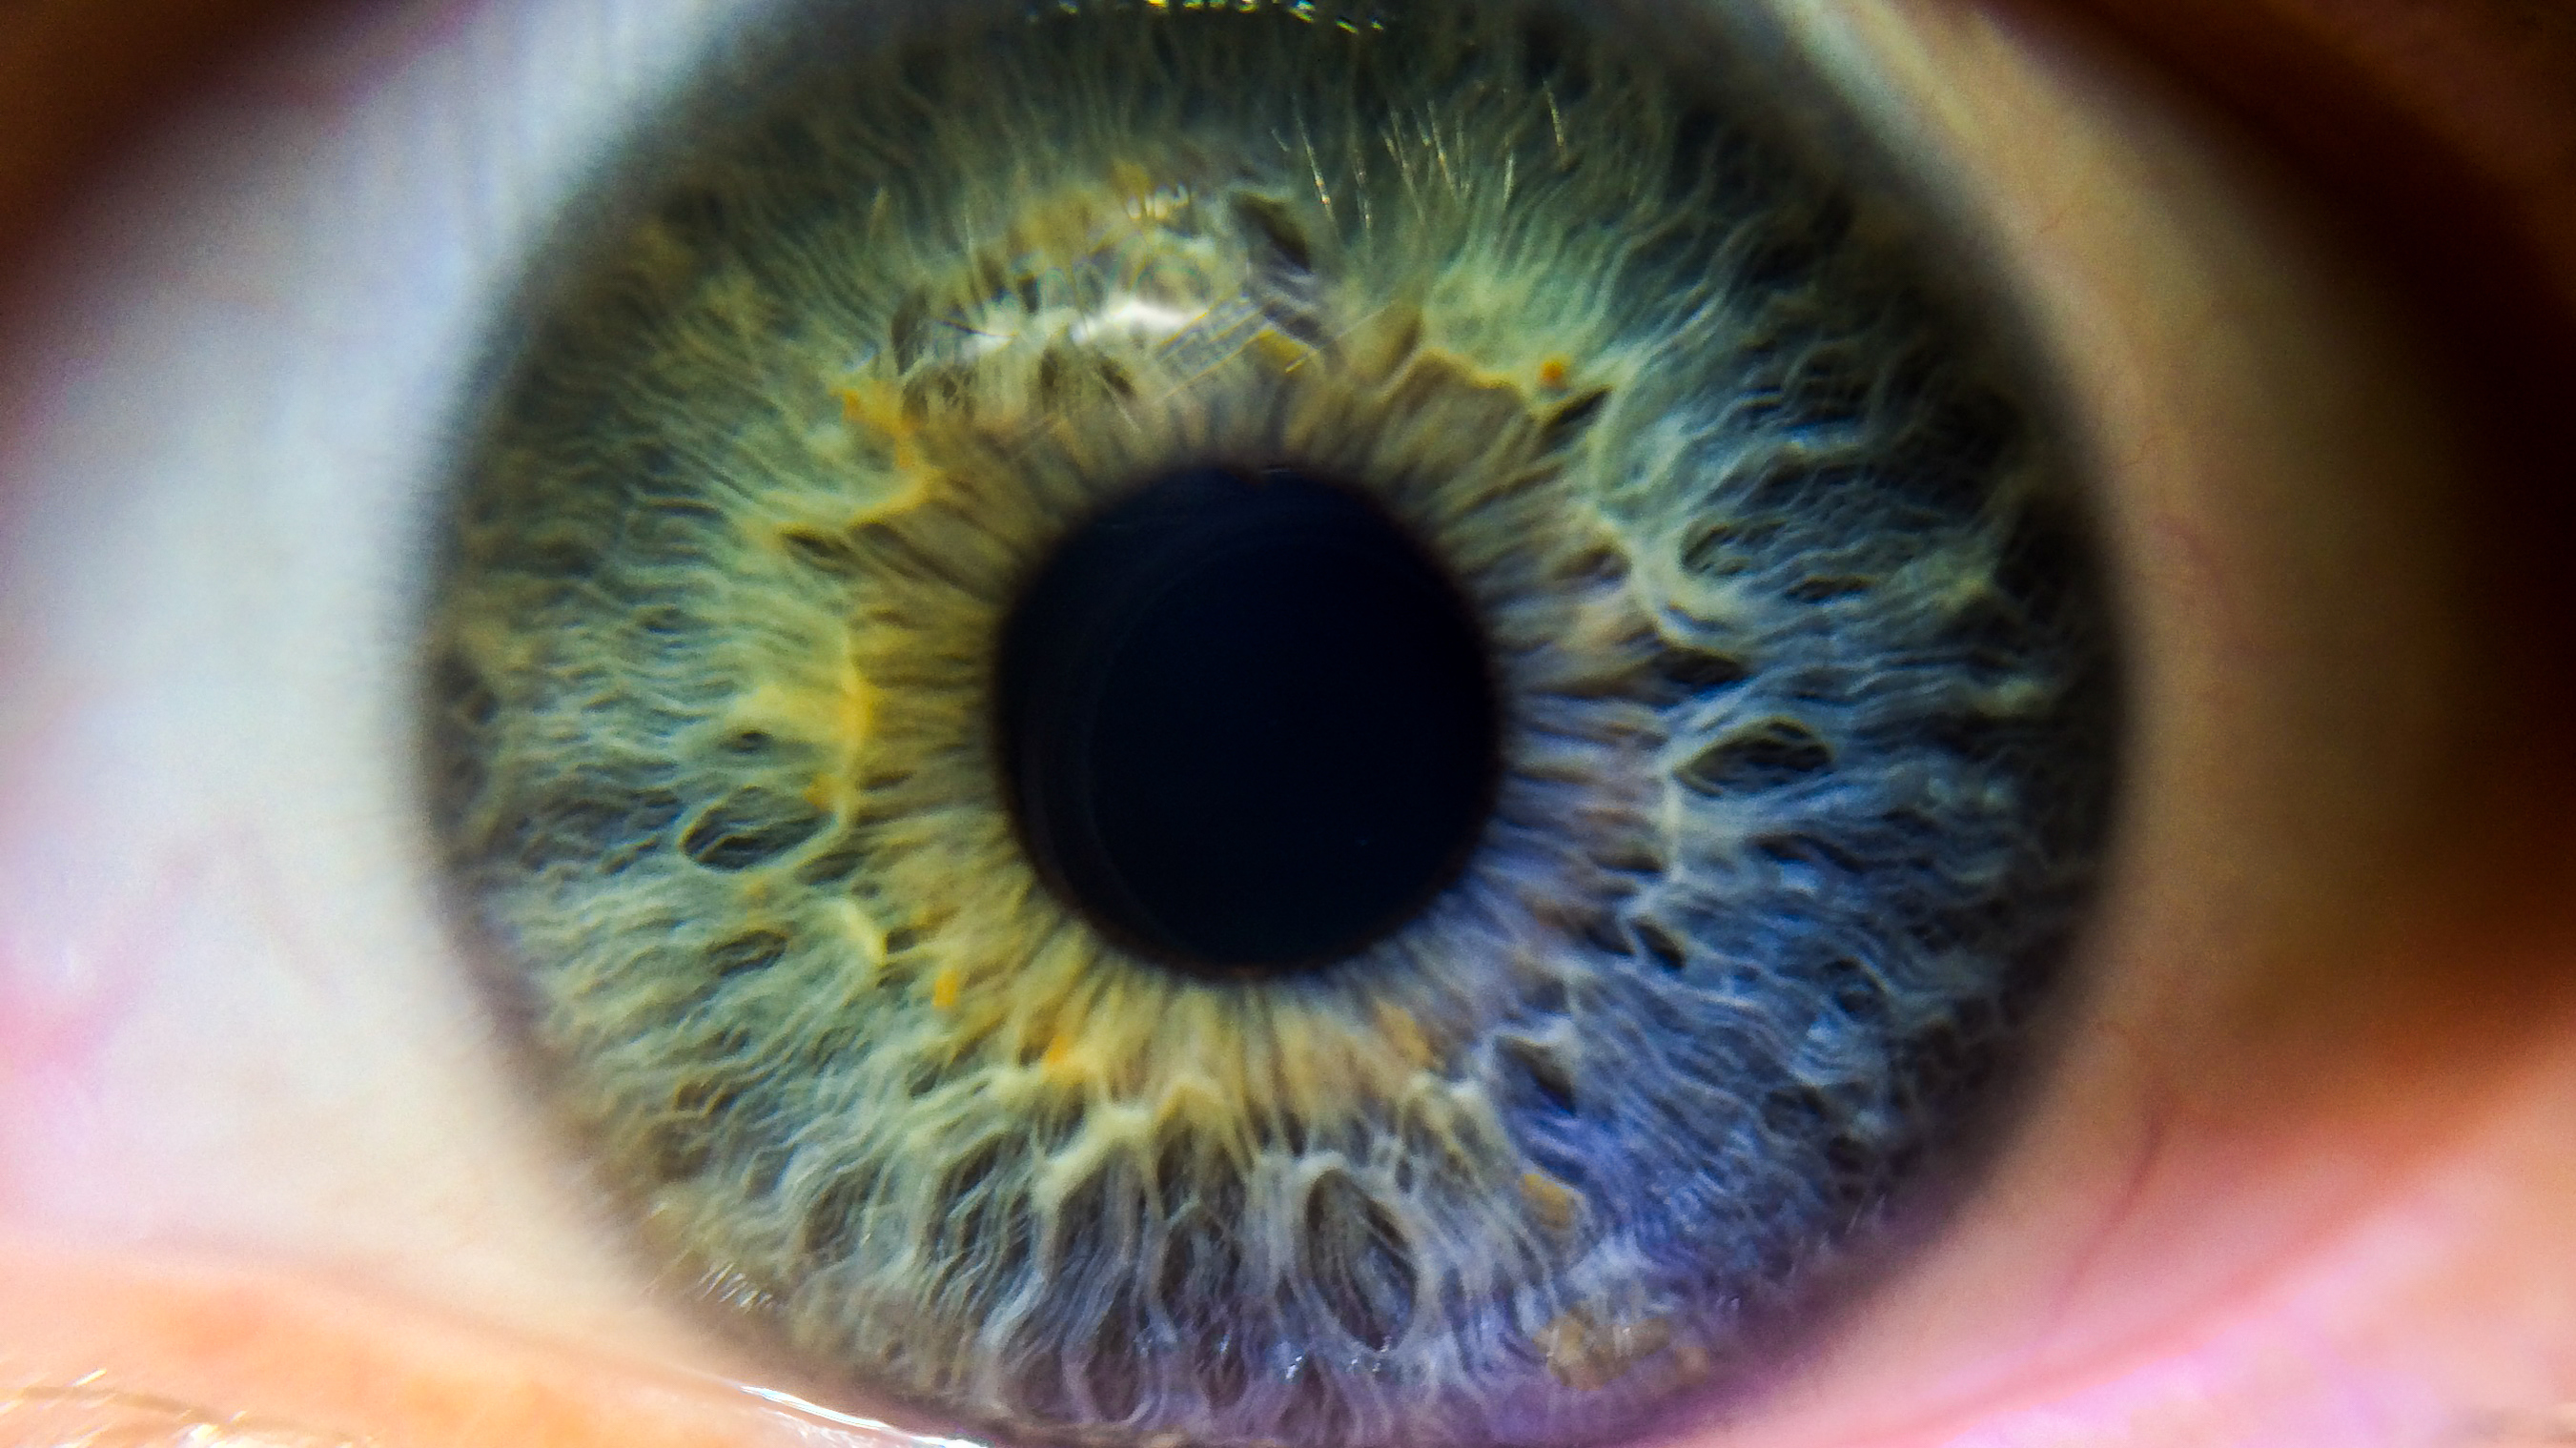 First Nhs Led Clinical Trial For Thyroid Eye Disease News